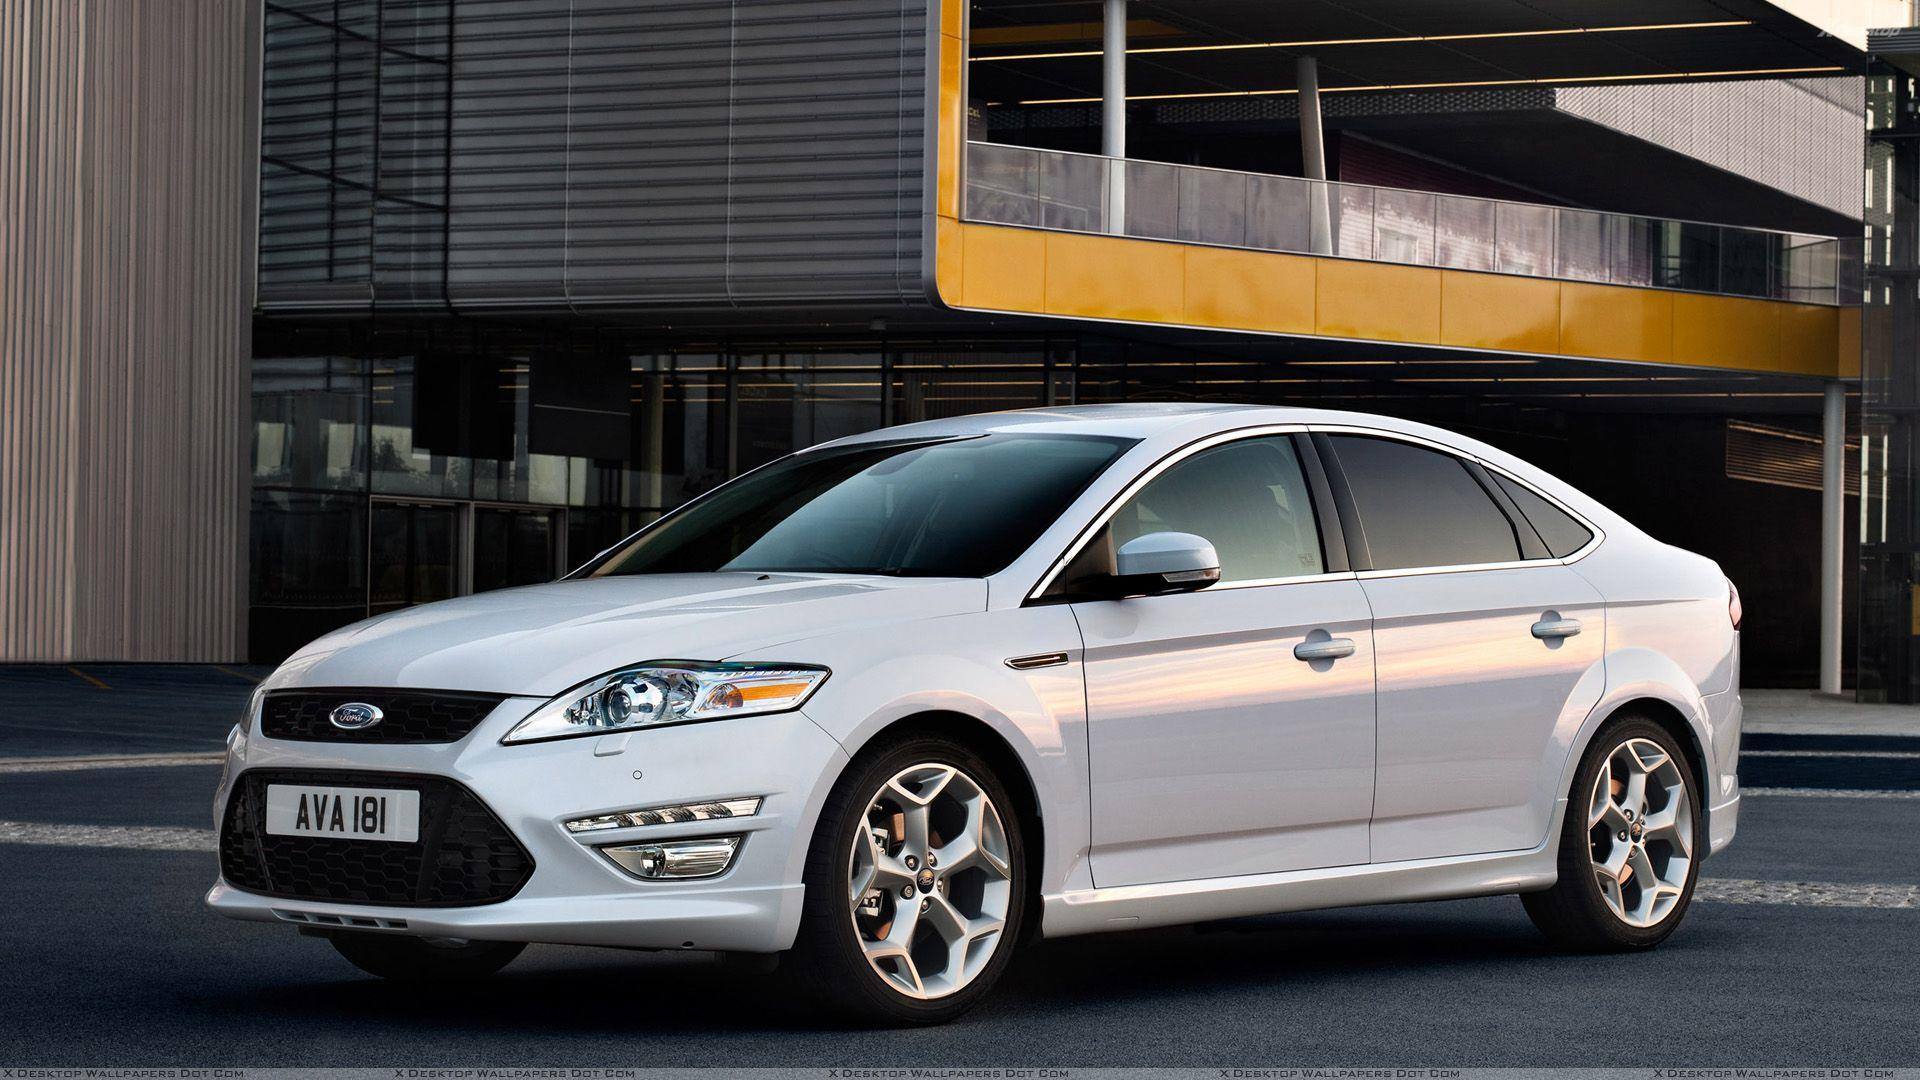 Ford Mondeo Wallpapers, Photos & Image in HD